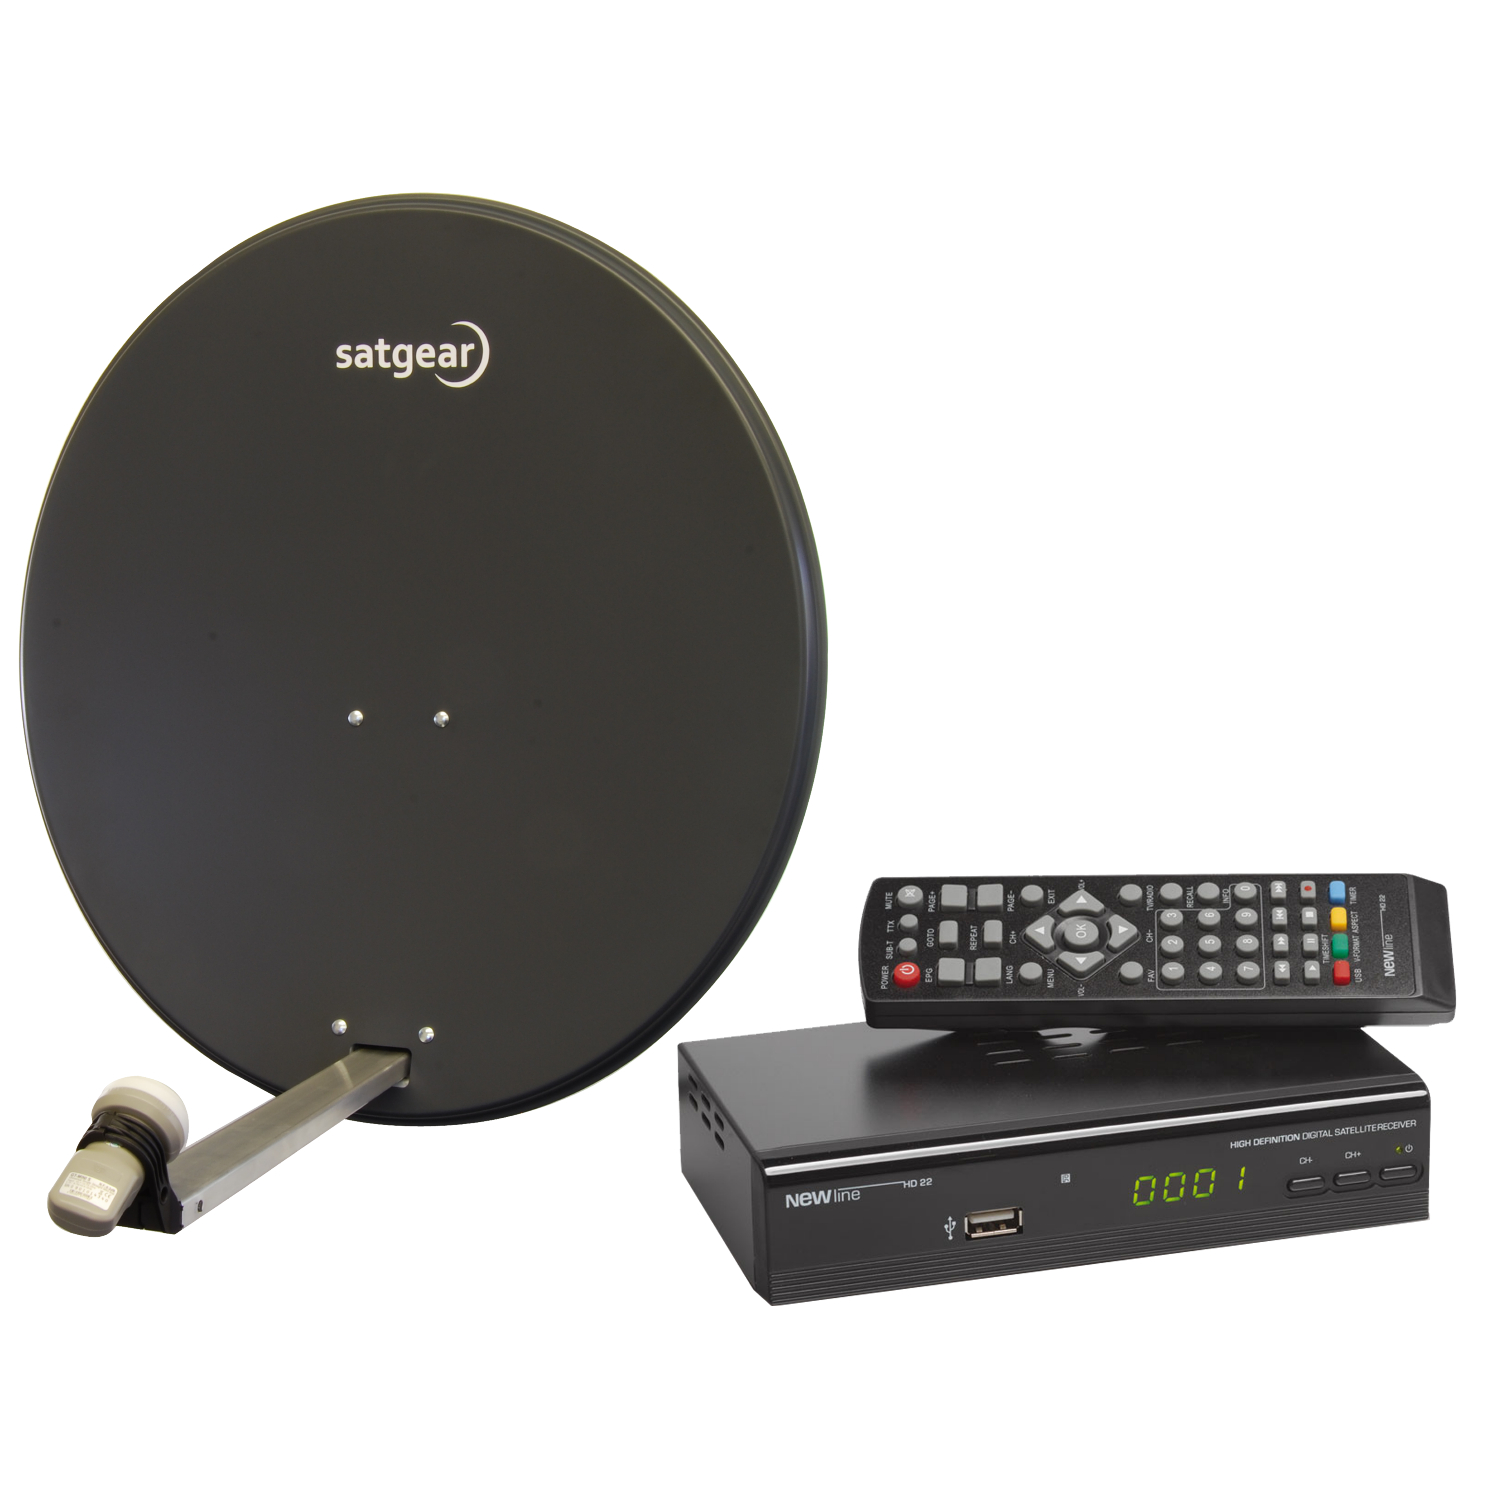 Details about satgear 65cm grey satellite dish amp hd receiver kit for